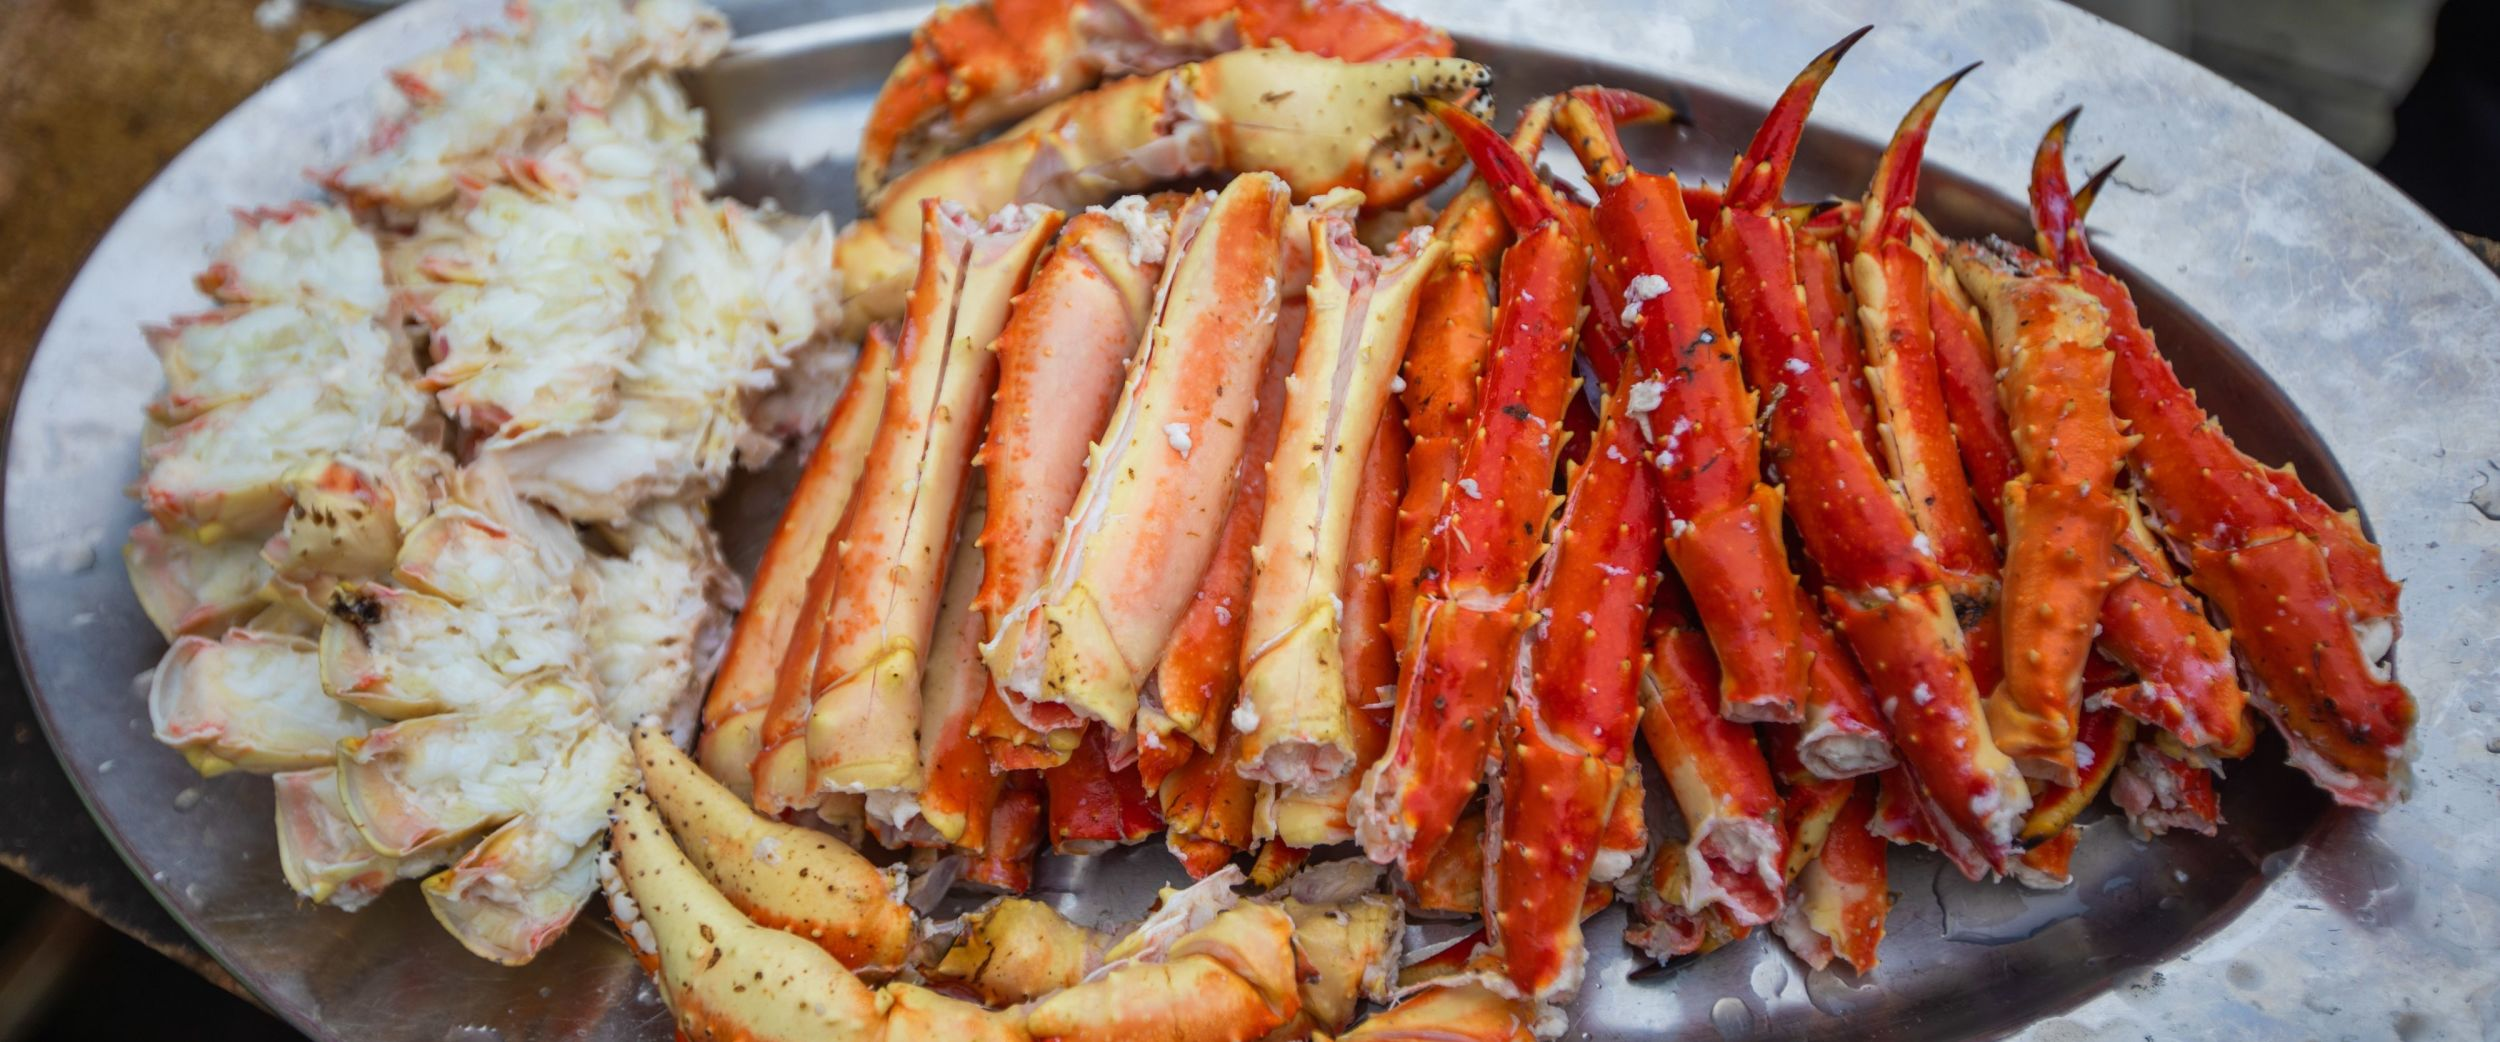 Plate full of delicious king crab